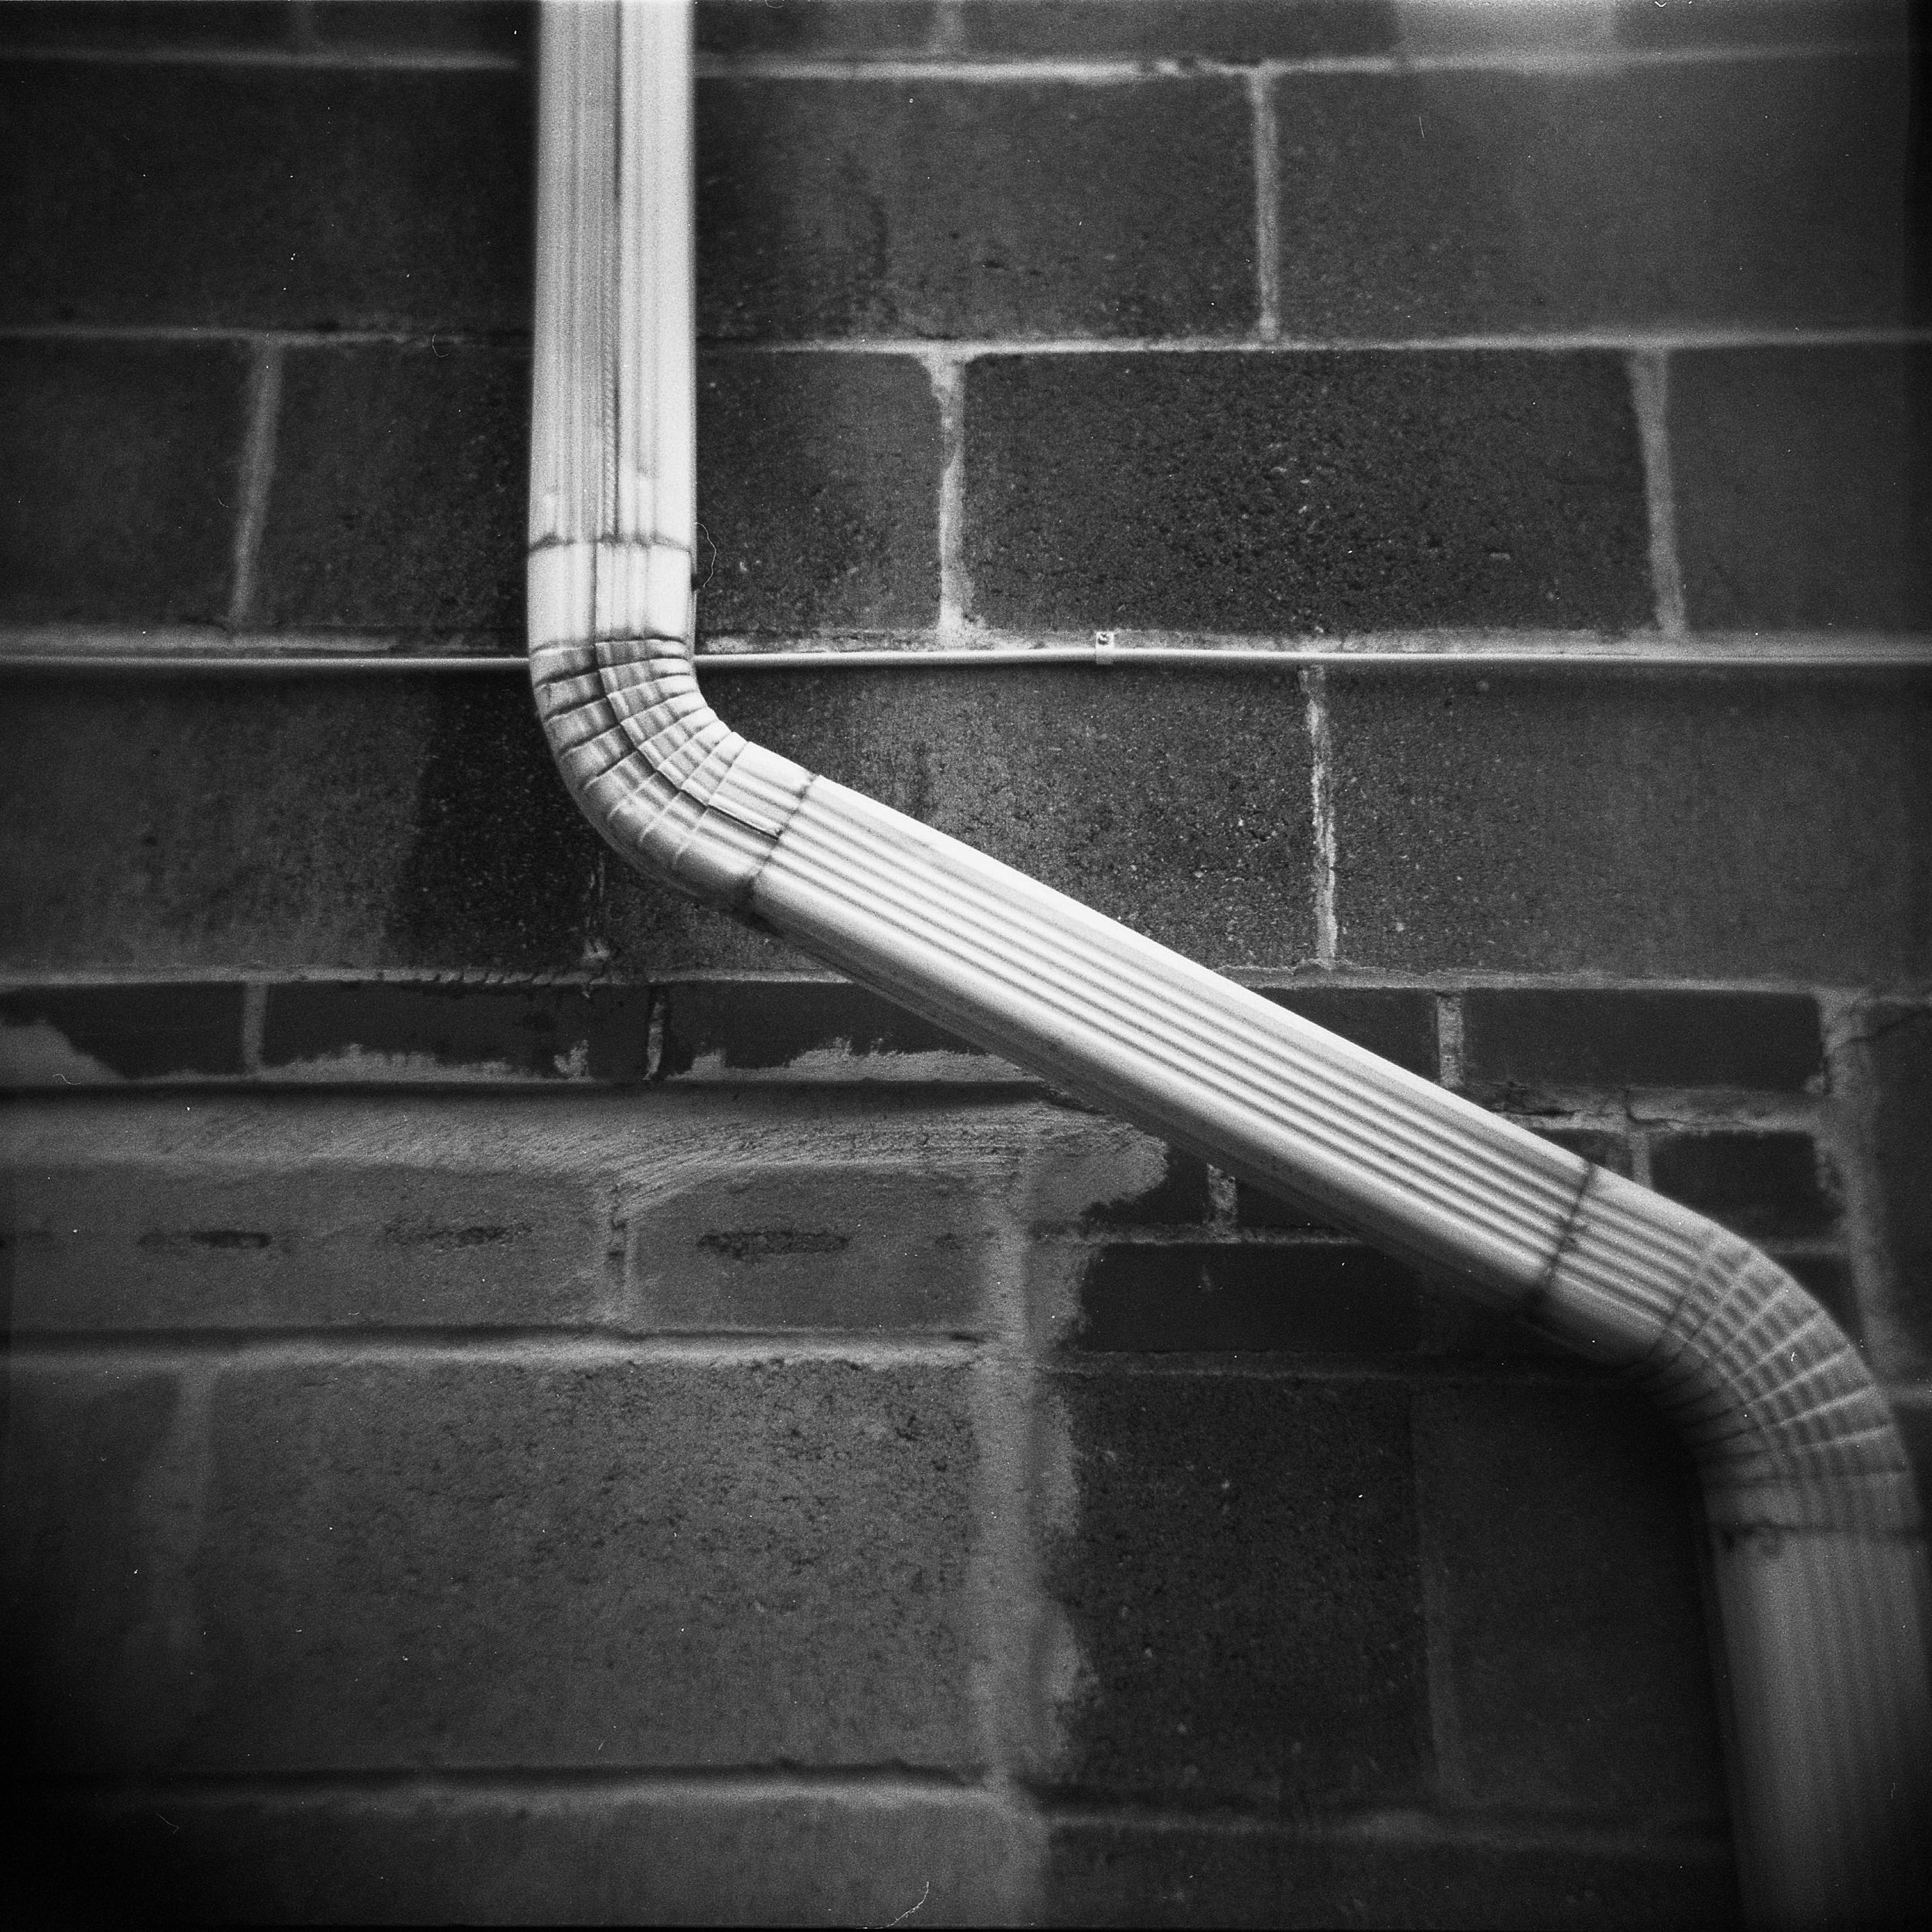 15_CB Adams_Downspout.jpg